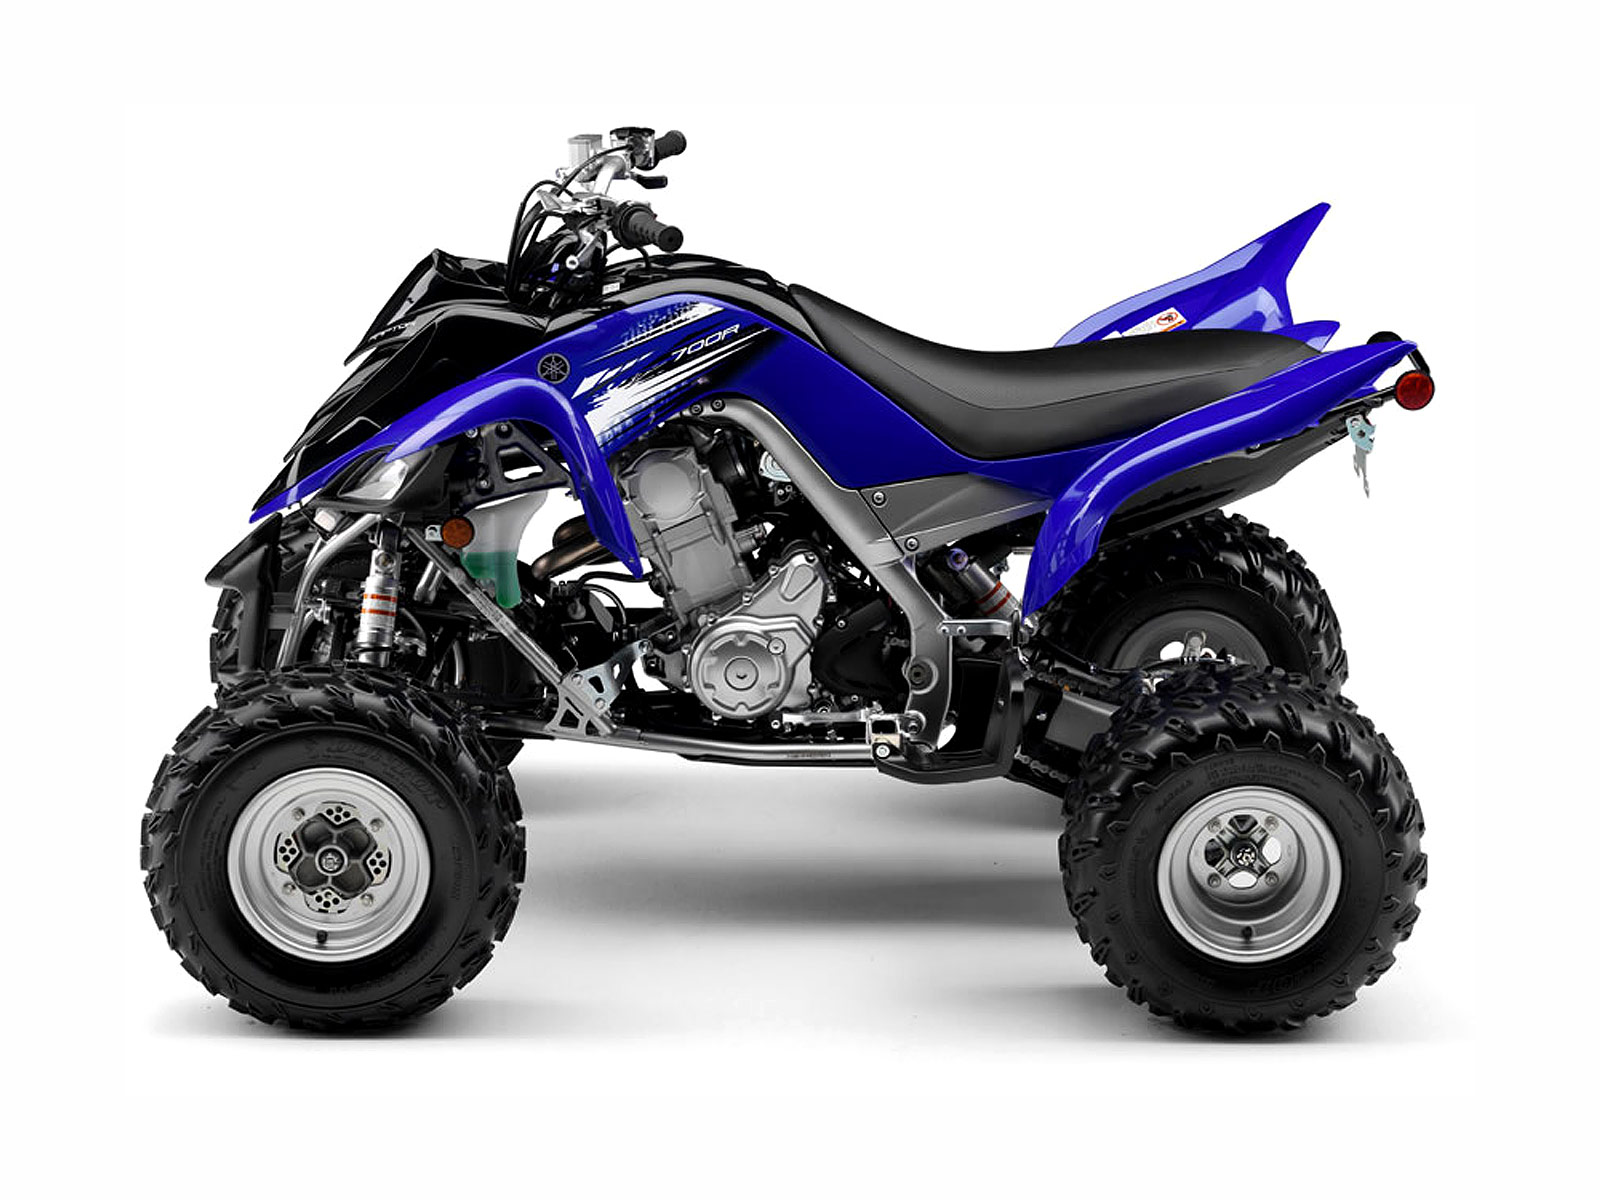 2012 Raptor 700R YAMAHA ATV Wallpapers specifications review 1600x1200